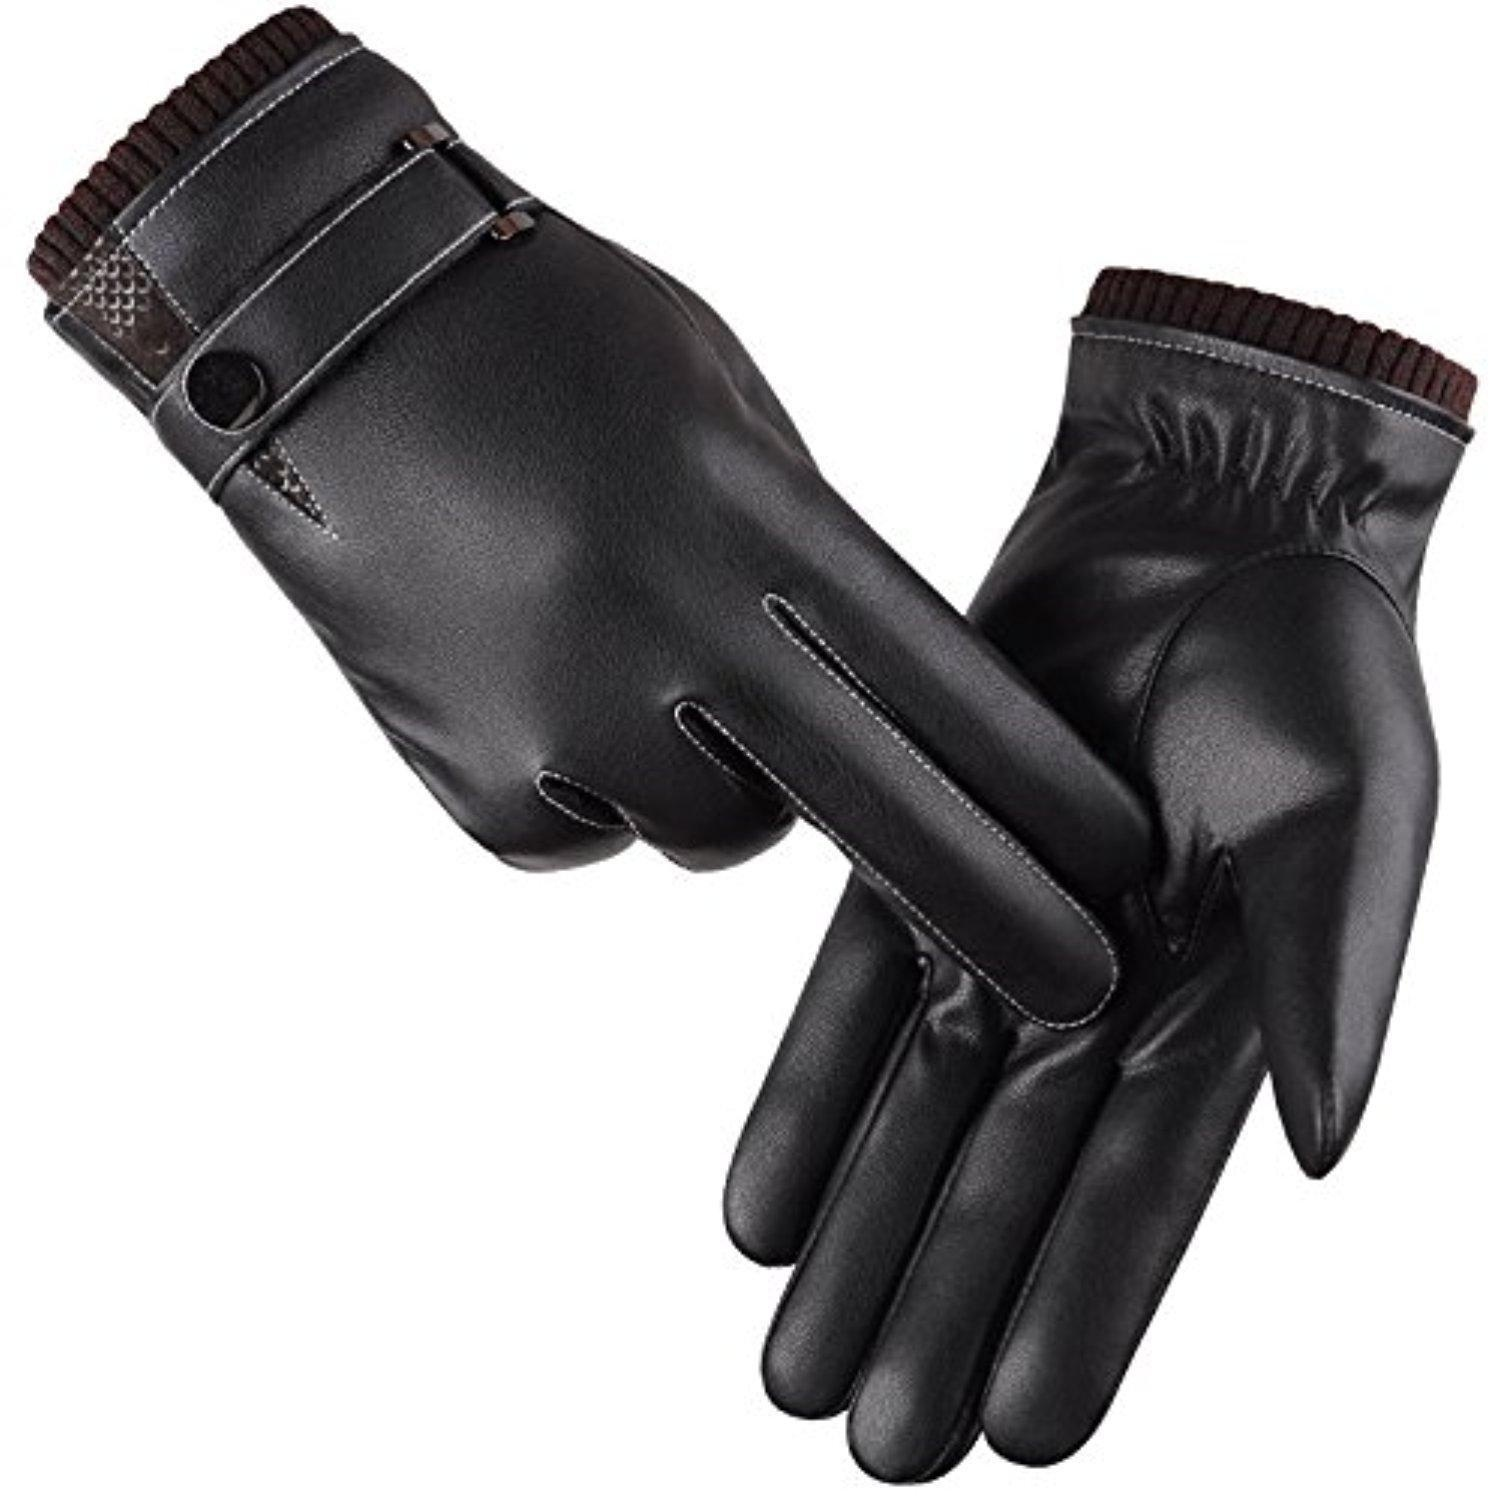 Driving gloves winter - Men S Winter Gloves Pu Leather Driving Gloves Touchscreen Technology